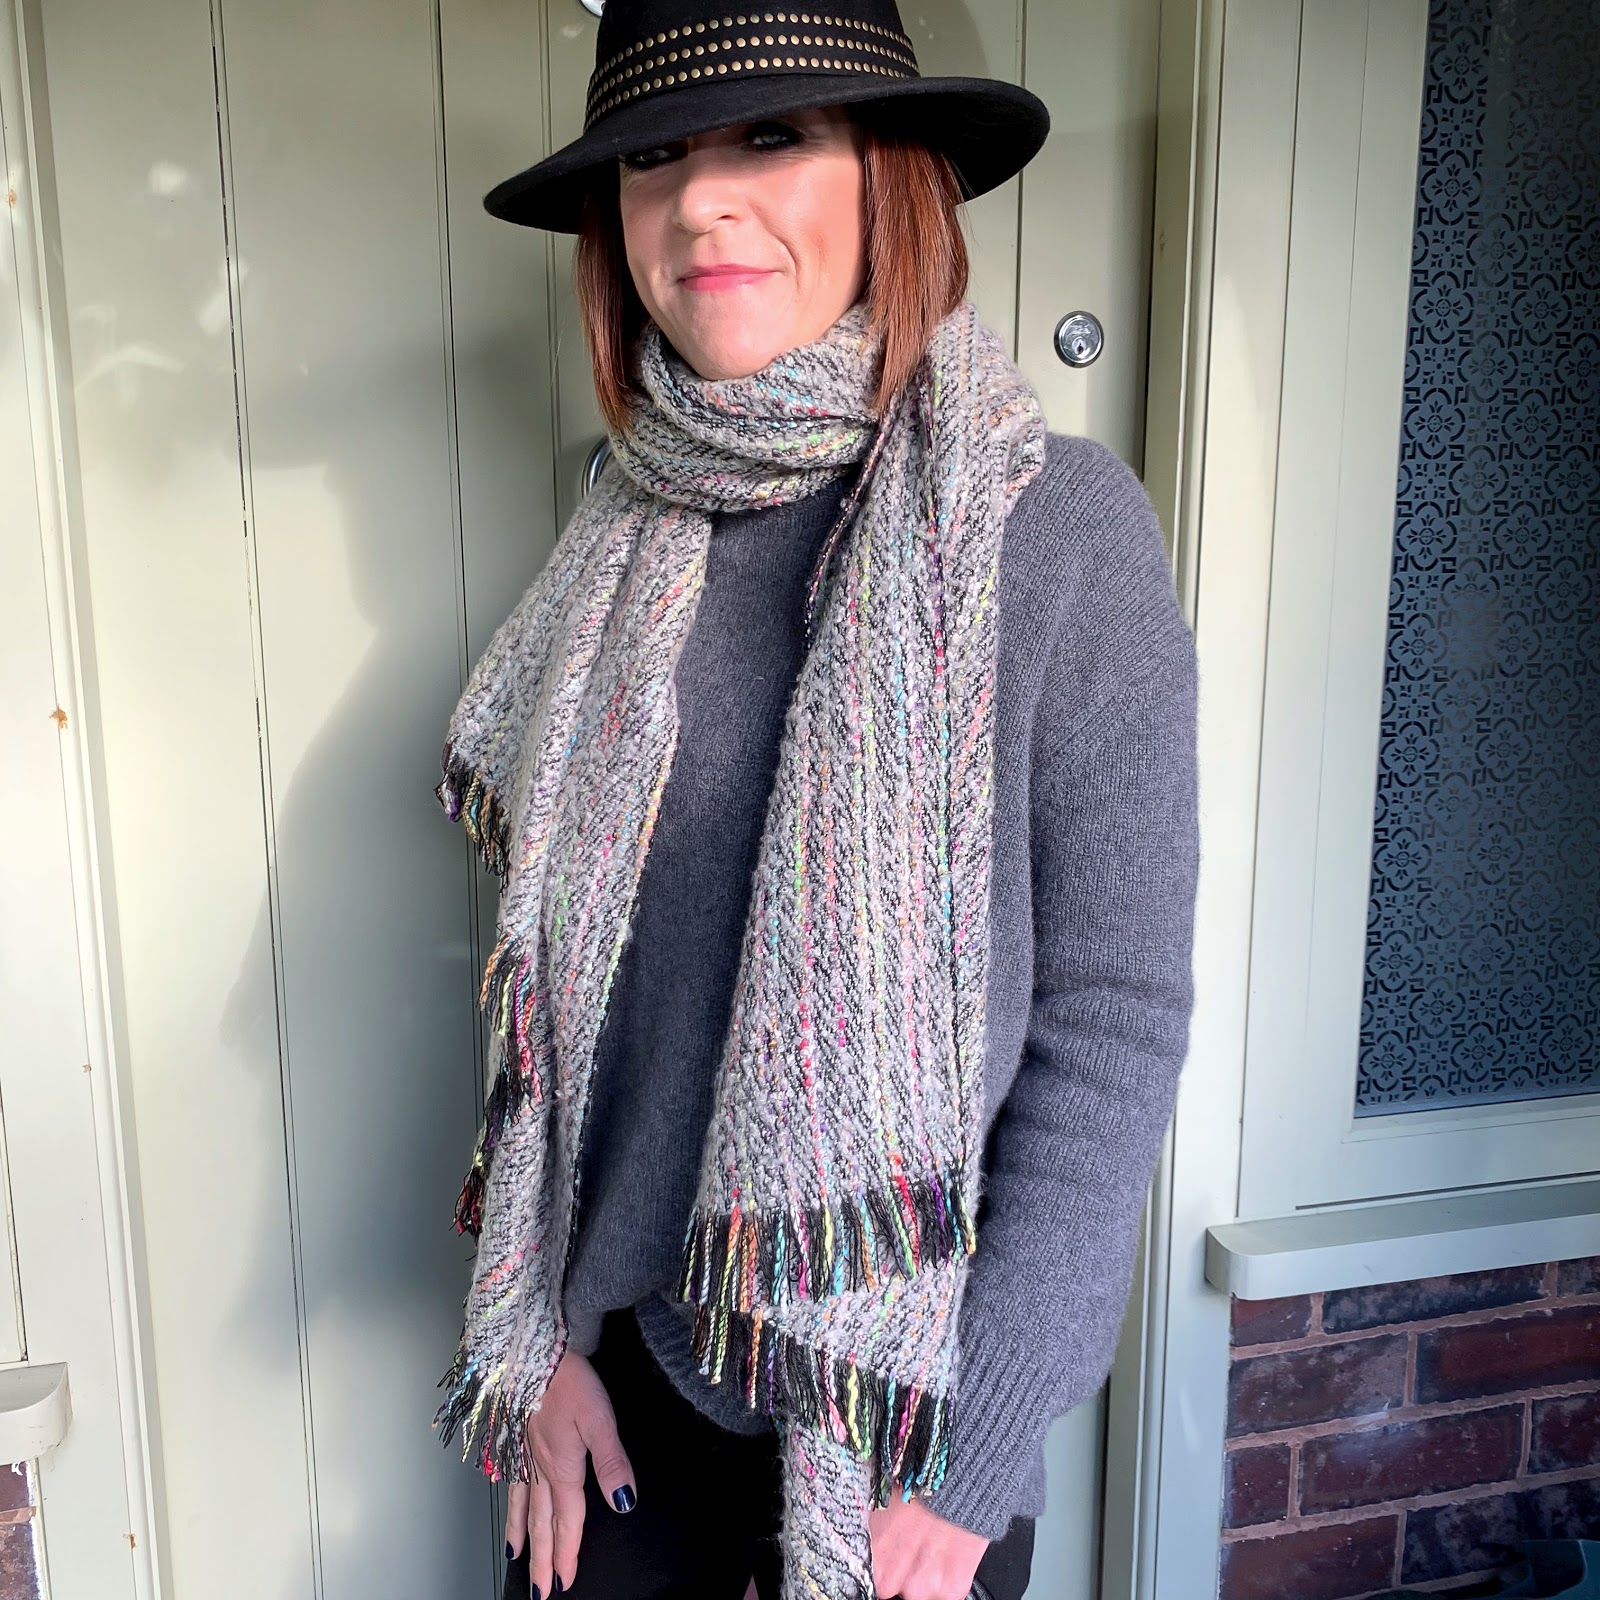 my midlife fashion, john lewis fedora hat, zara turtle neck cashmere jumper, madeleine mutli coloured scarf, j crew toothpick 8 inch jeans, madeleine leather tote bag with removable inner bag, madeleine soft suede chelsea boots